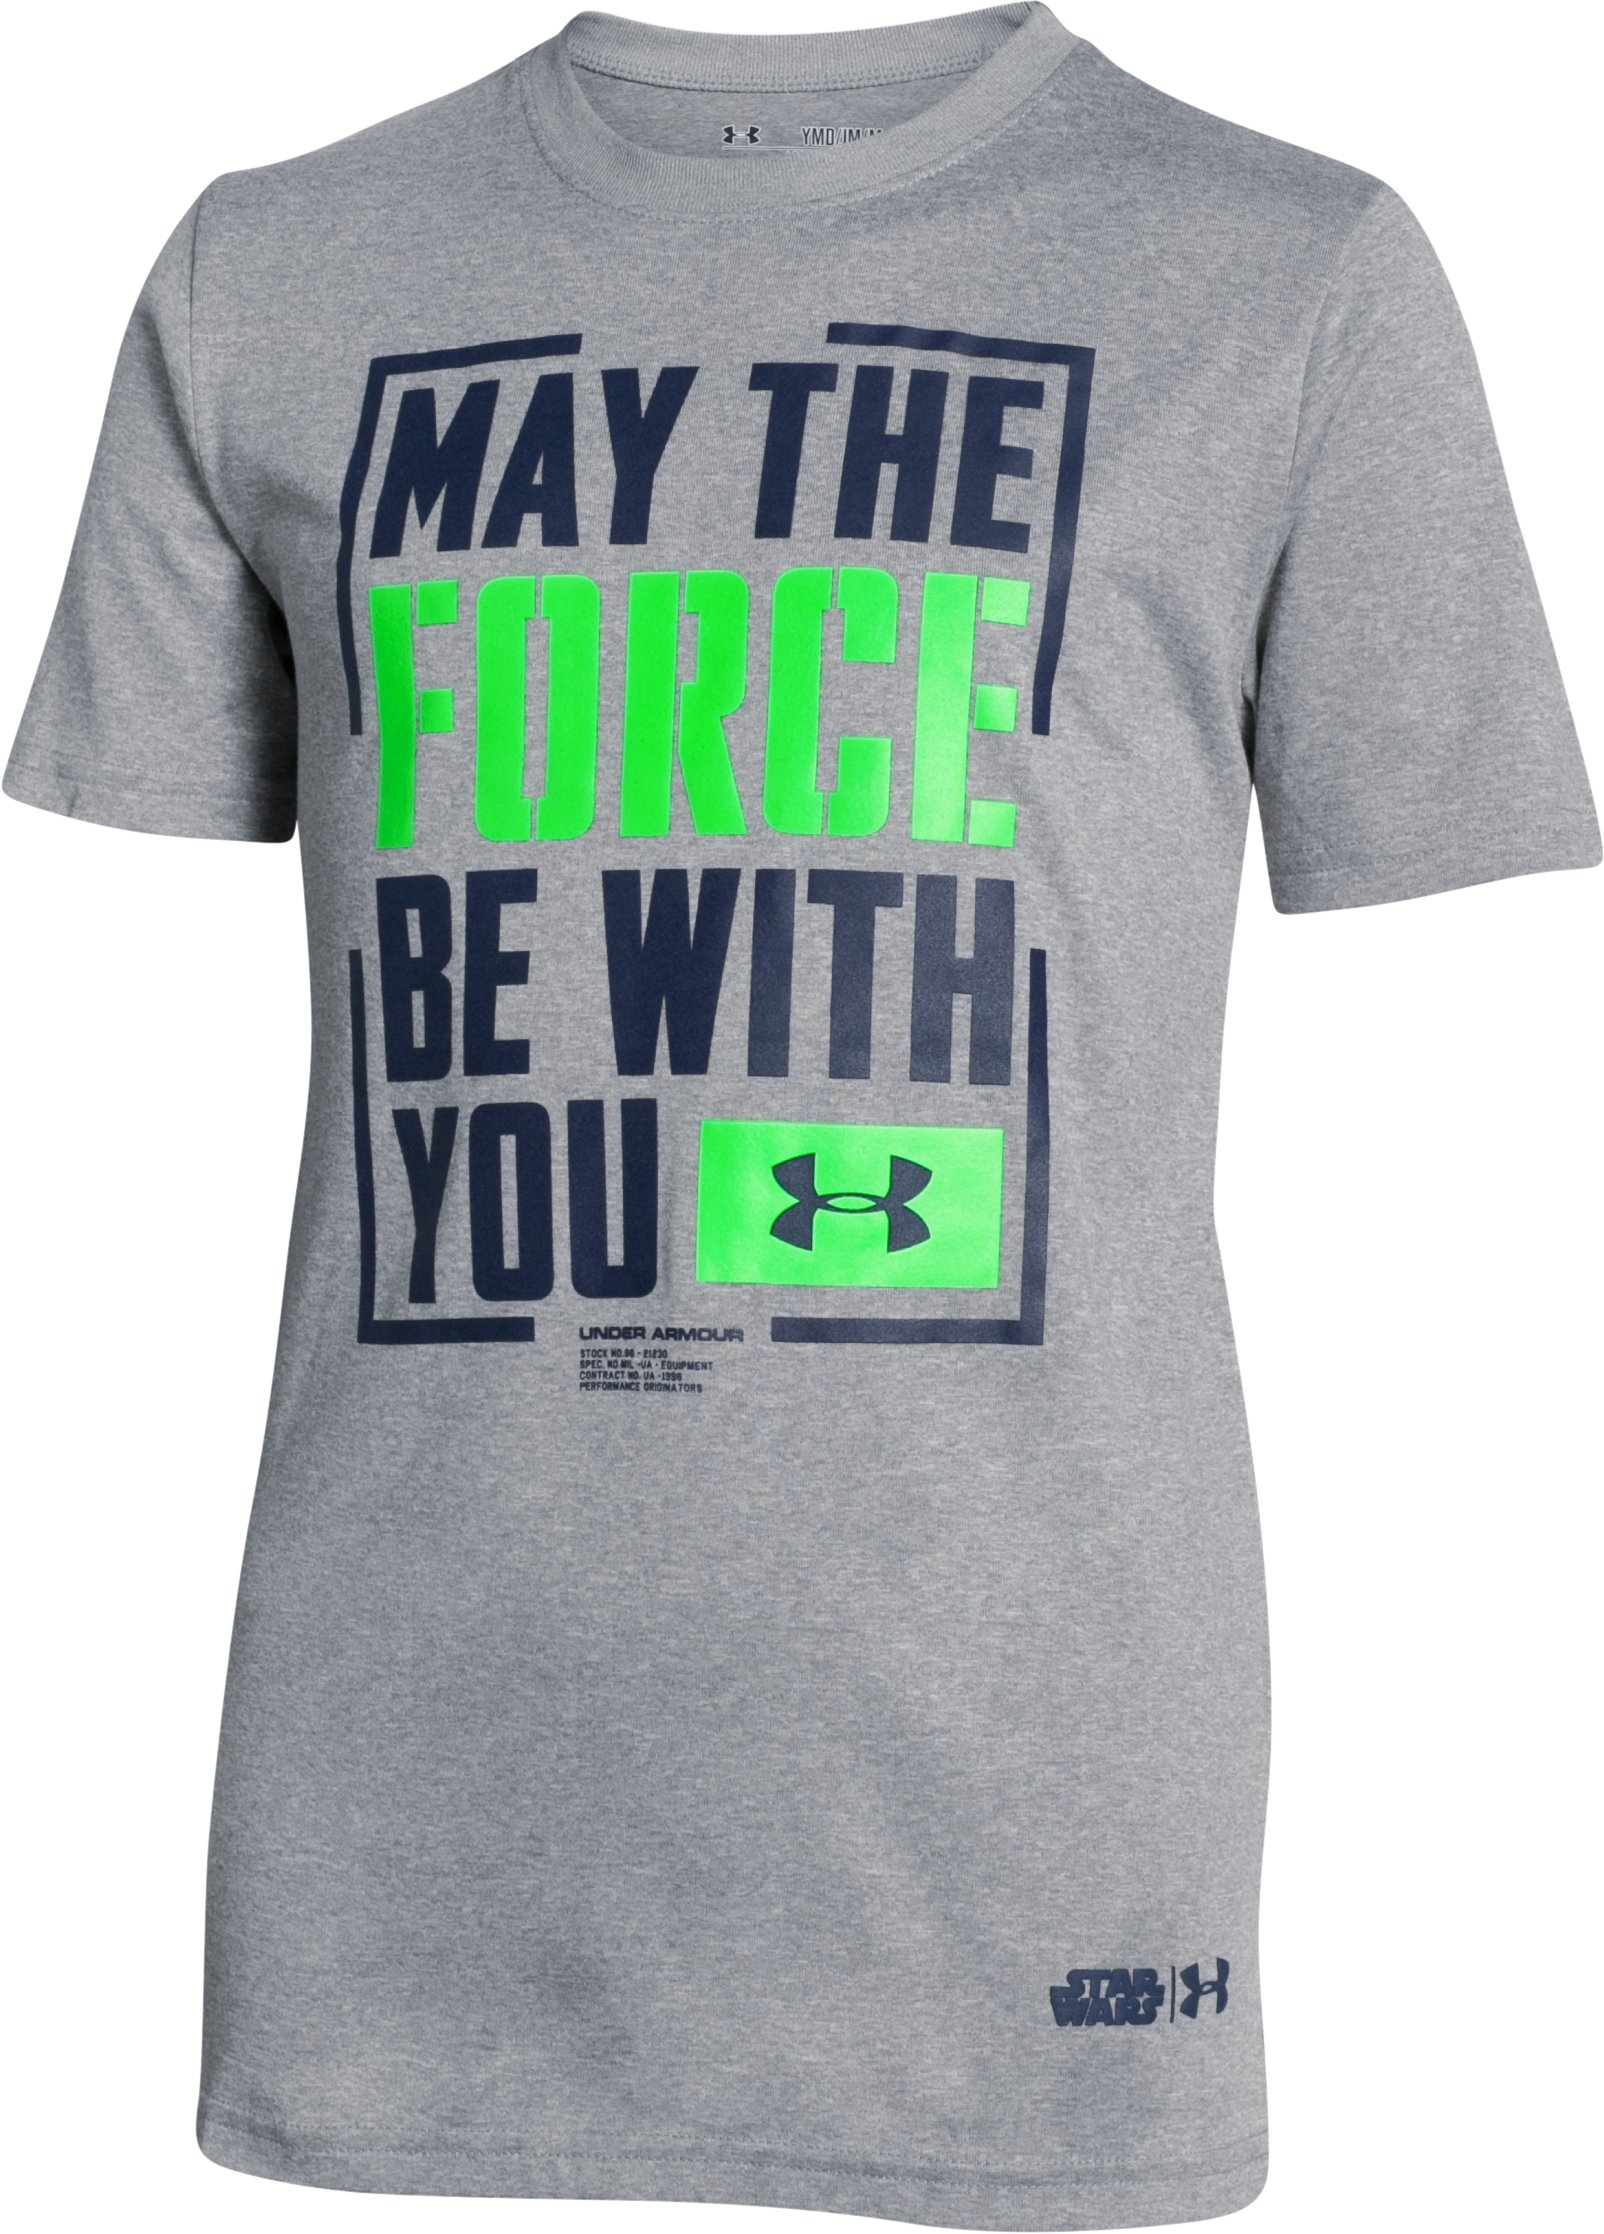 Boys' Under Armour® Alter Ego The Force T-Shirt, True Gray Heather